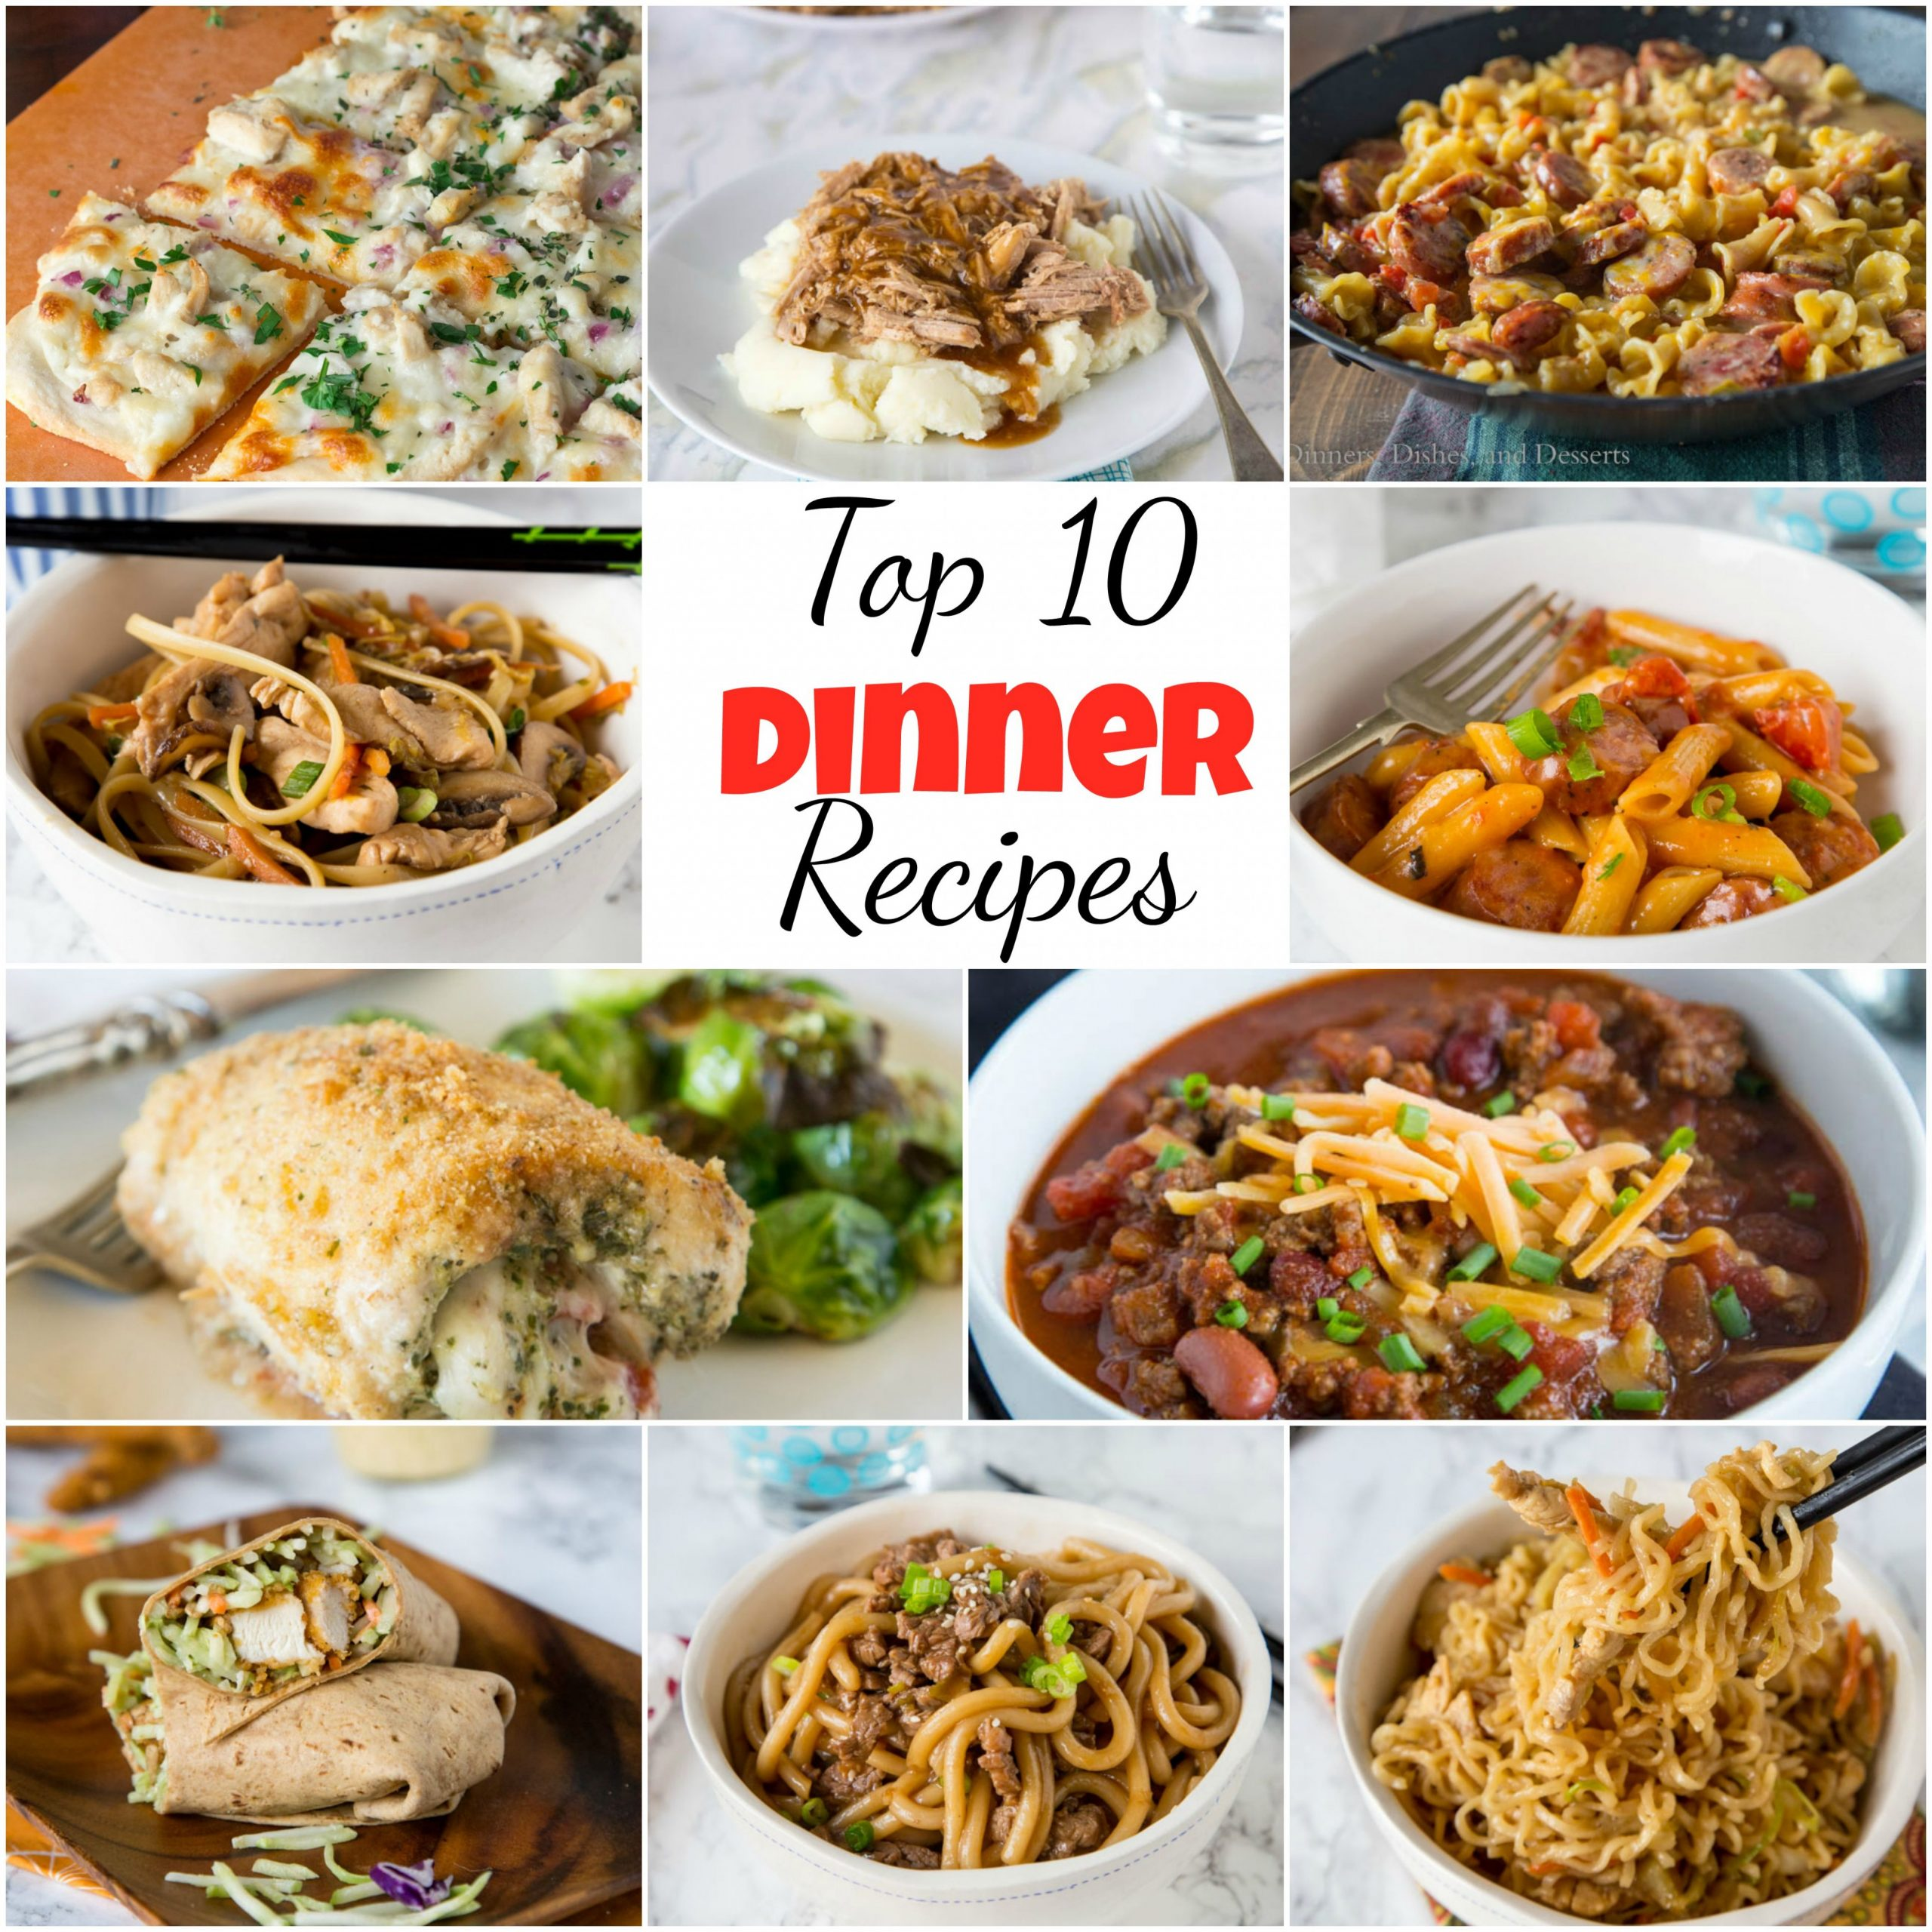 Top 8 Dinner Recipes - Dinners, Dishes, and Desserts